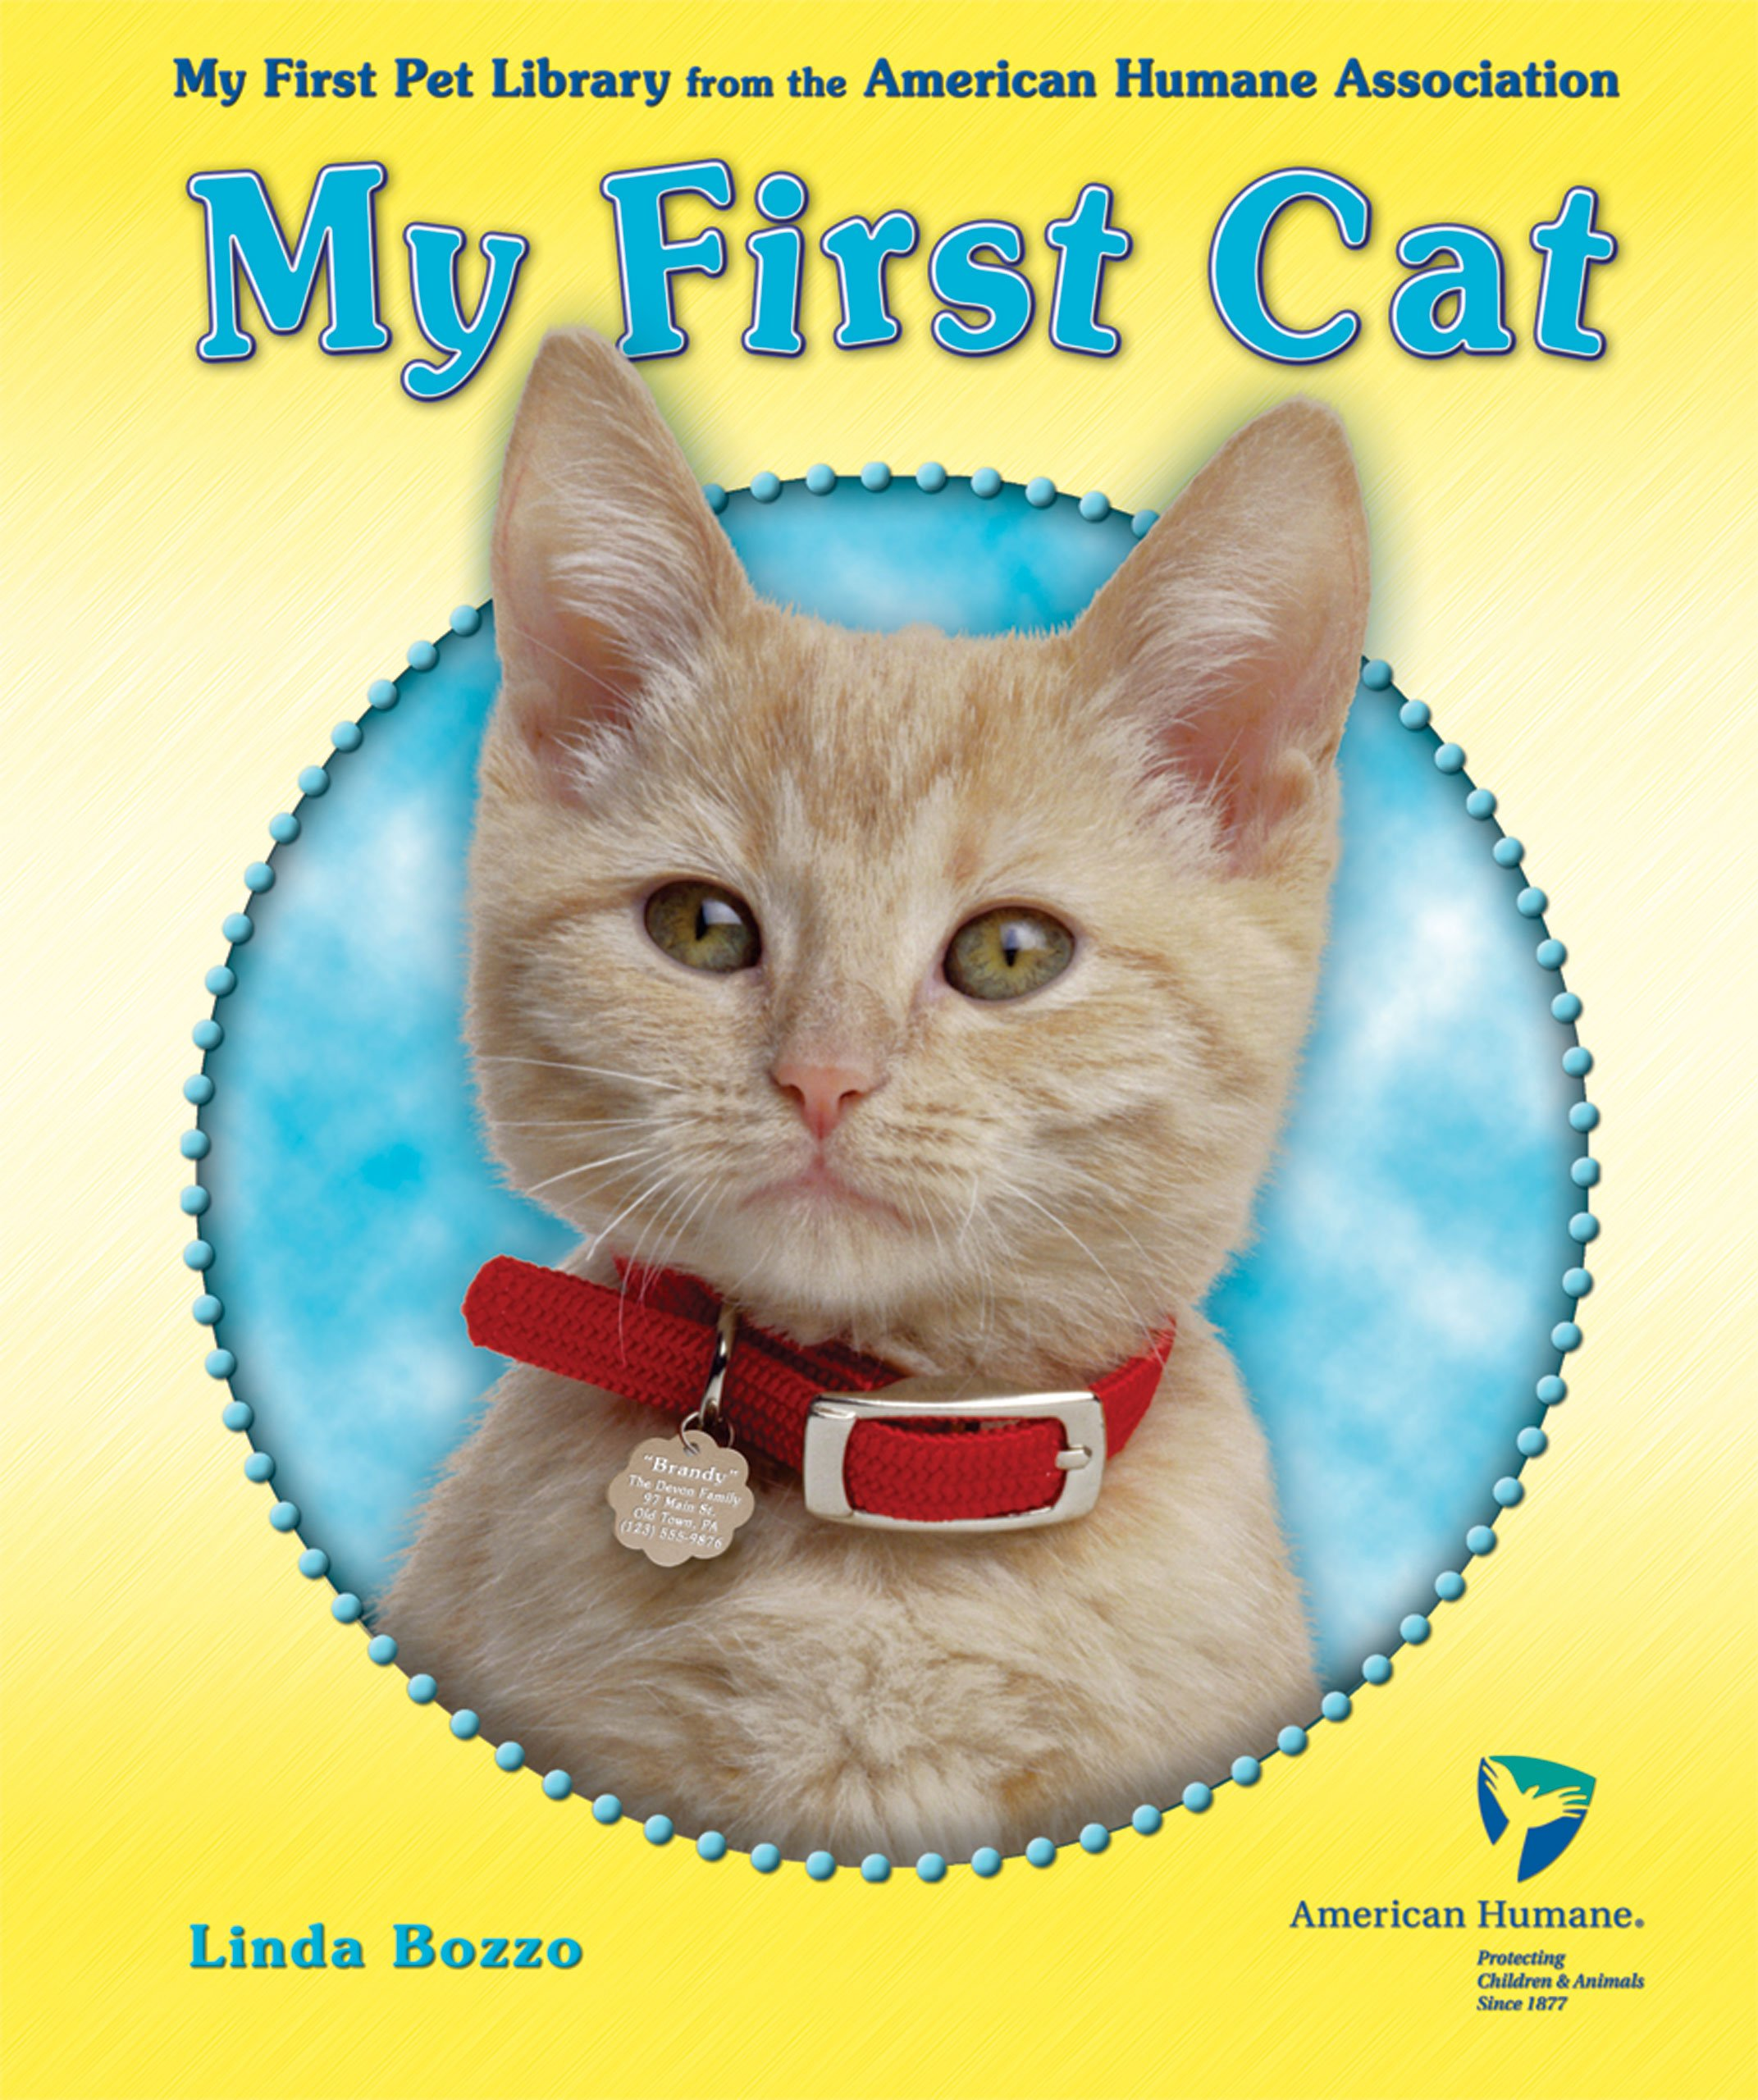 My First Cat (My First Pet Library from the American Humane Association) PDF